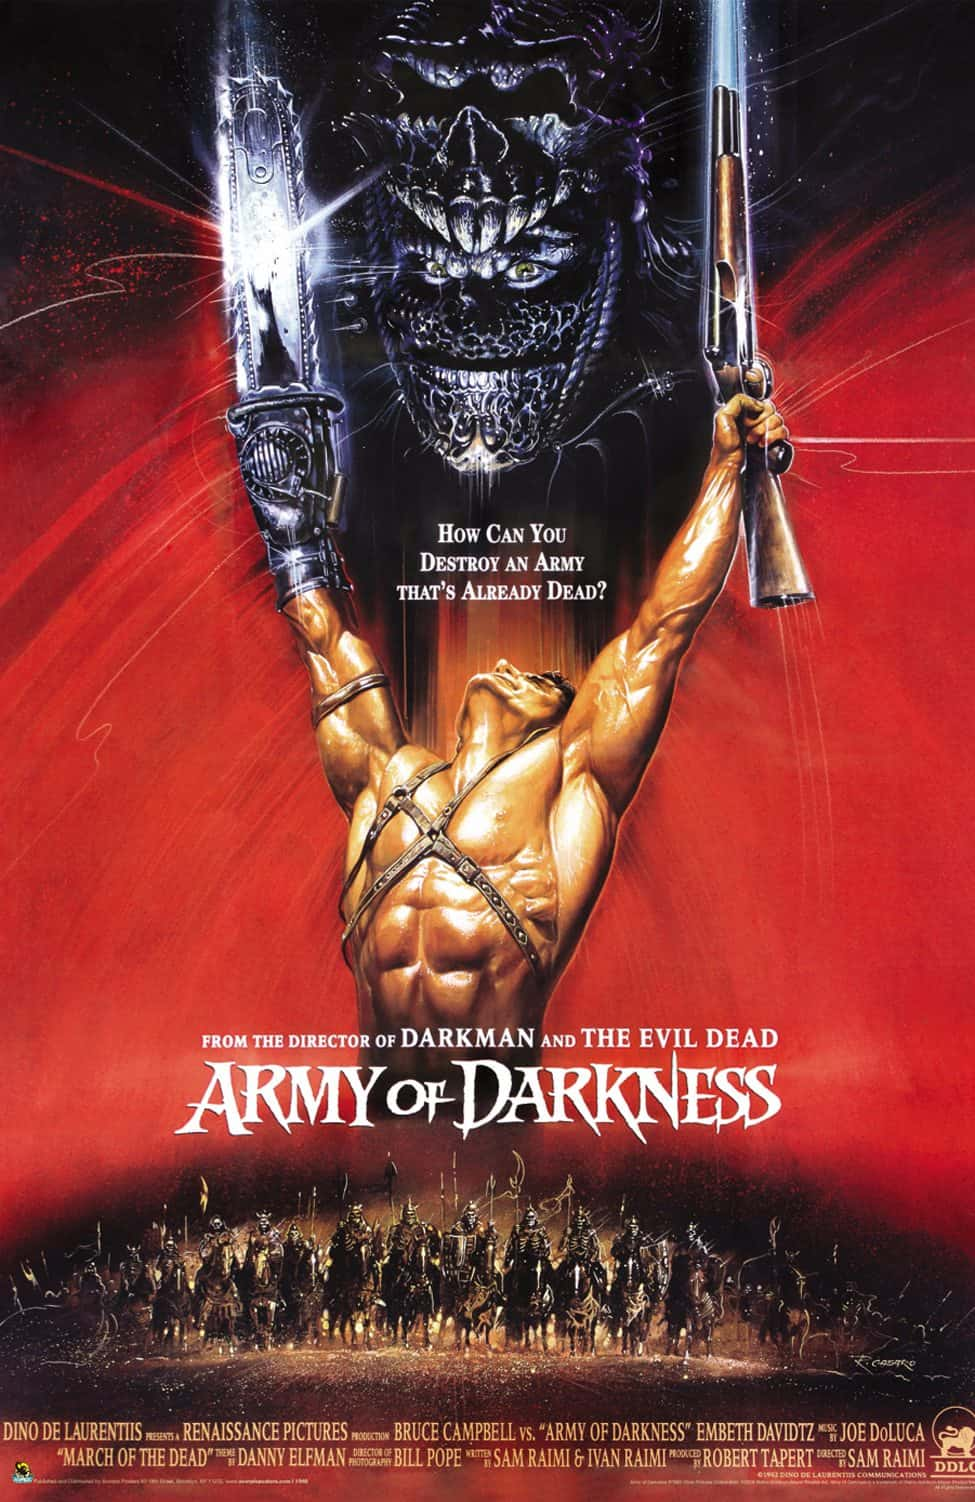 Horror Movie Review: Army of Darkness (1992)